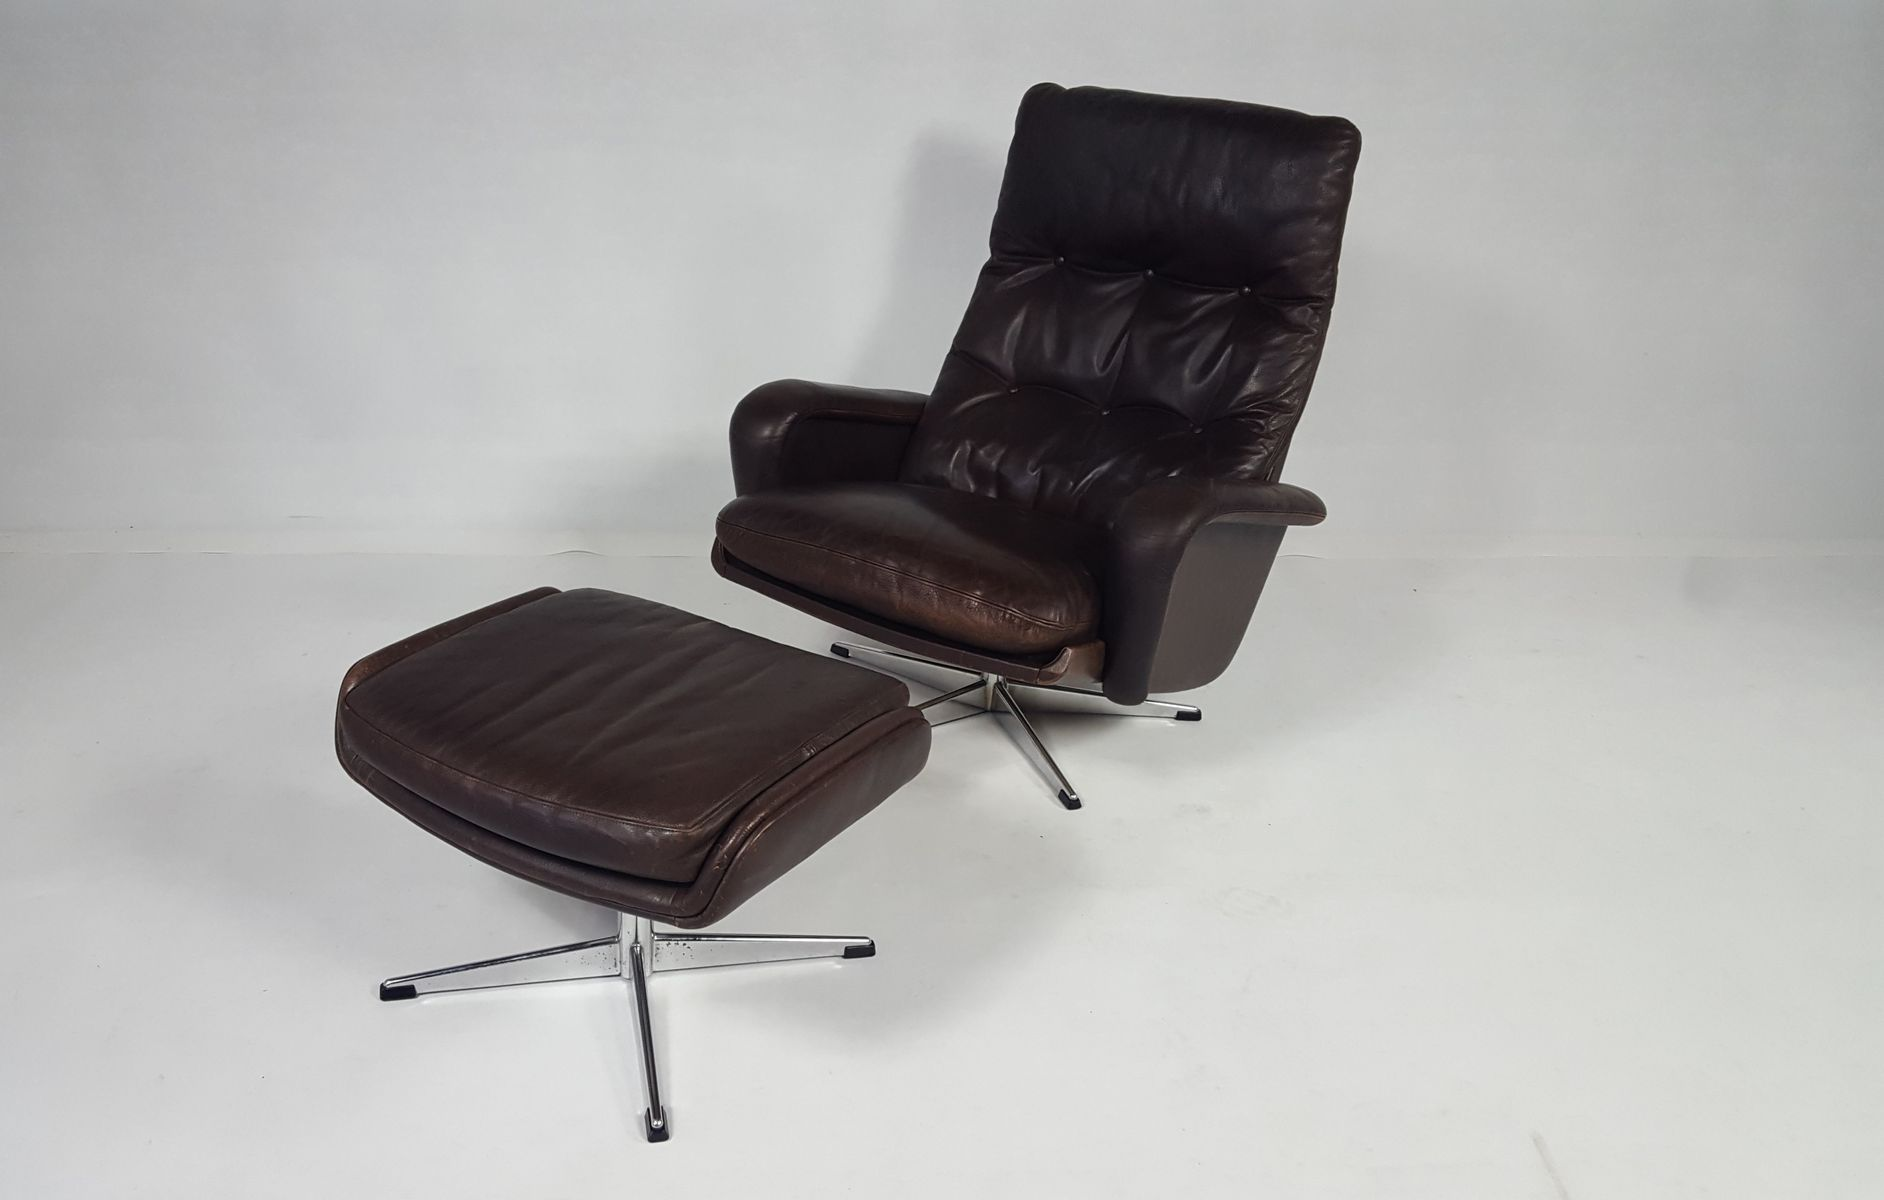 Leather Swivel Chair With Ottoman, 1970s